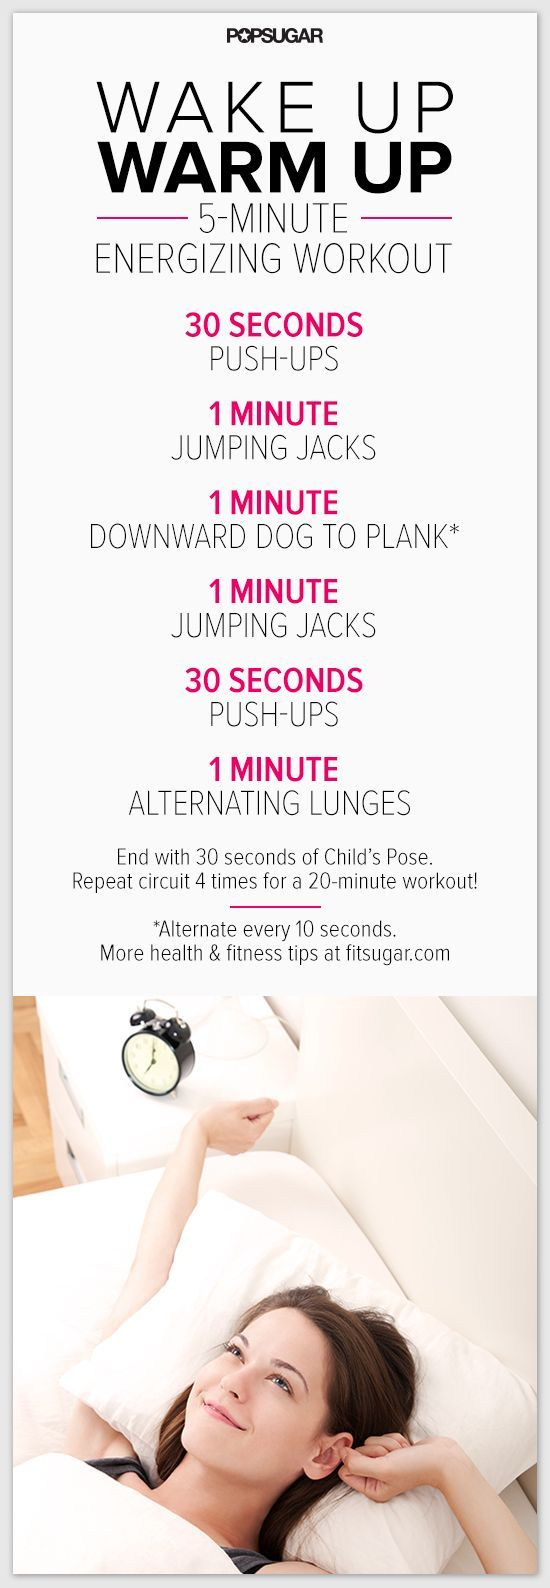 Wake Up and Move! A 5-Minute Energizing Warmup - I should be doing this every morning...